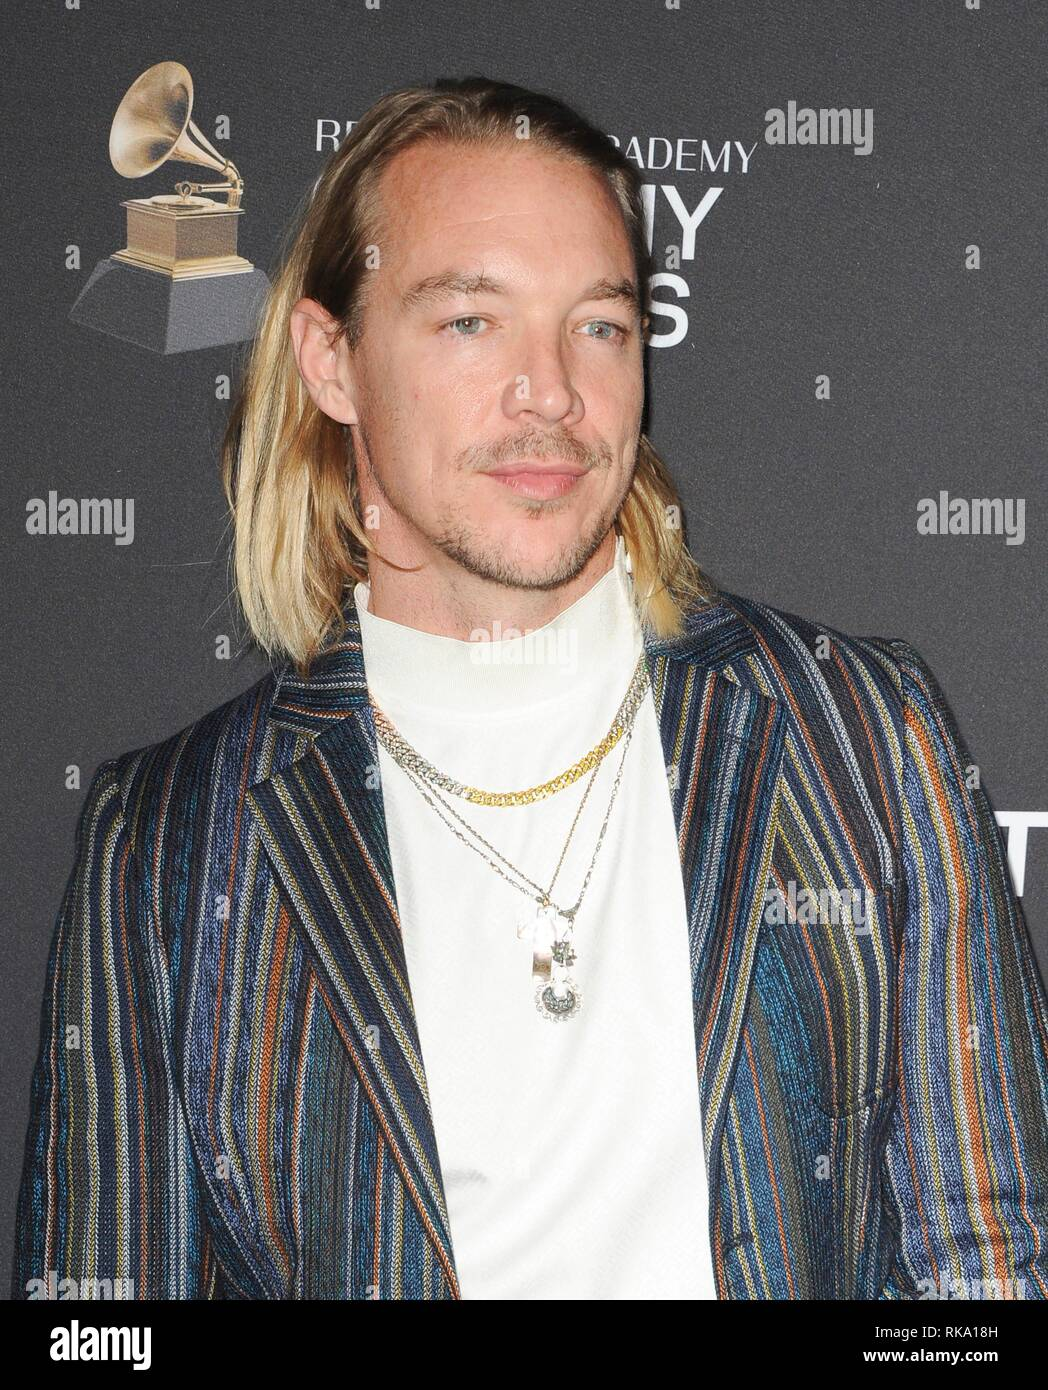 Diplo 2019 >> Diplo 2019 Stock Photos Diplo 2019 Stock Images Alamy